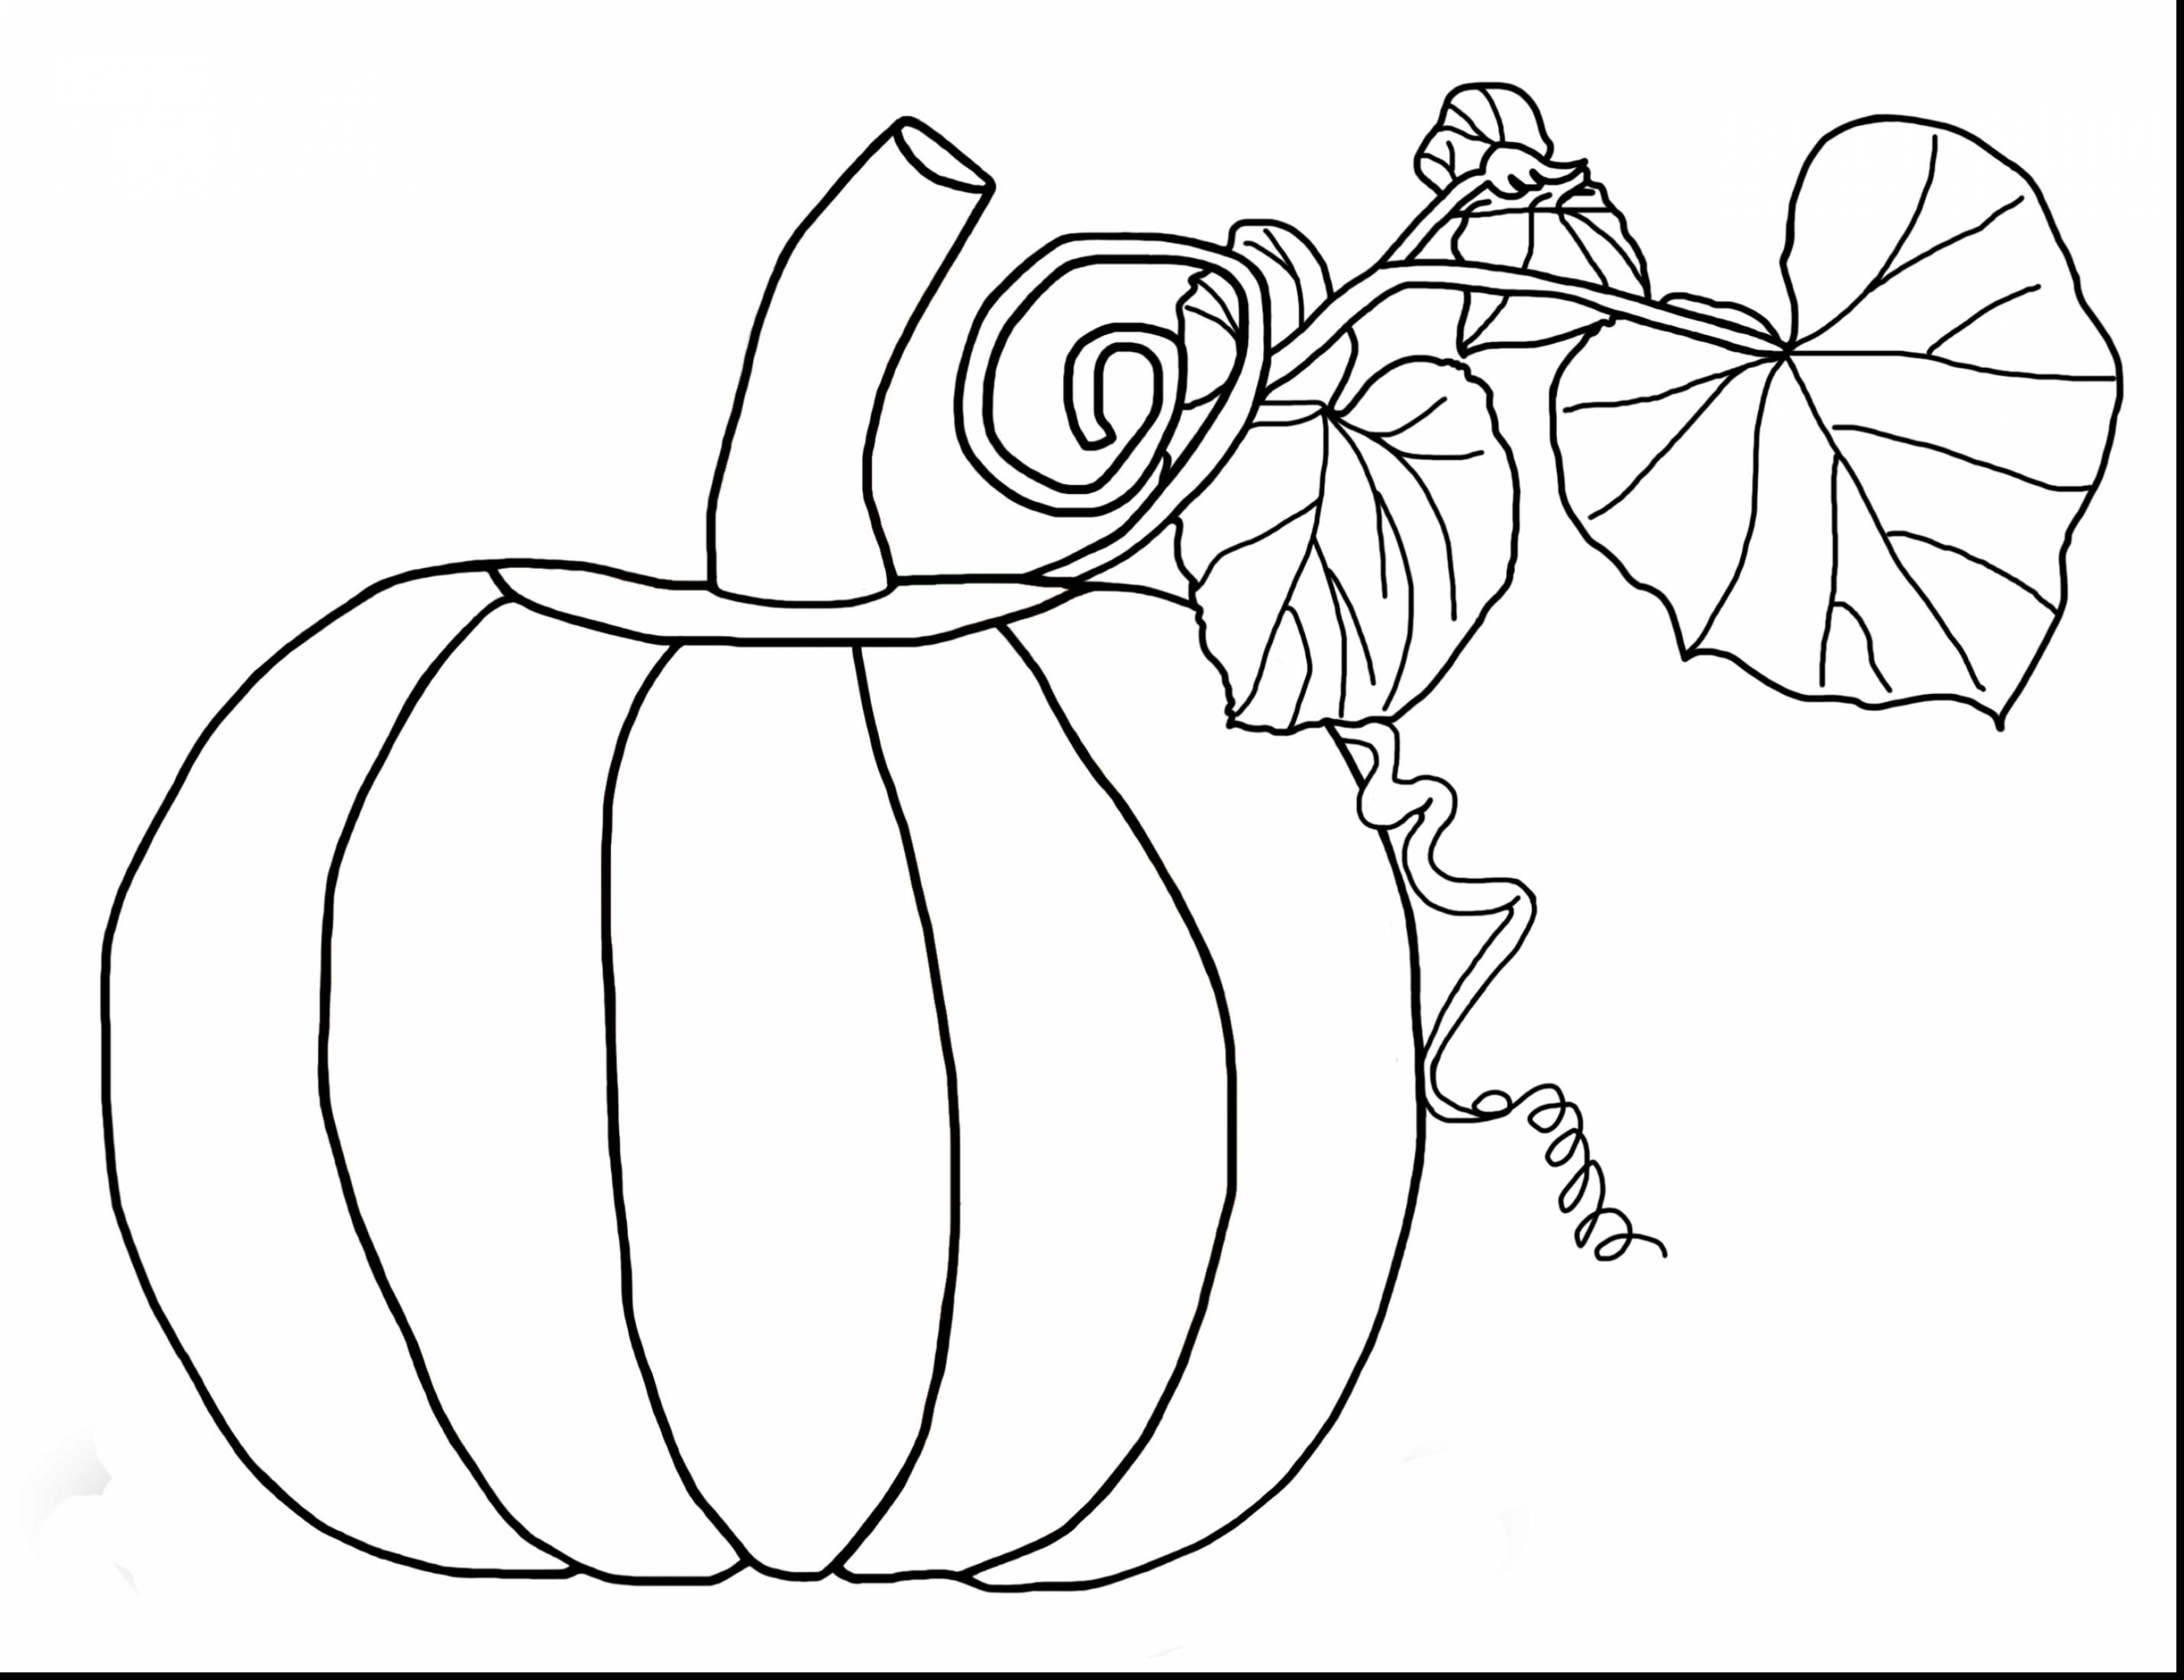 2860x2200 Turn Pictures Into Coloring Pages App Gallery